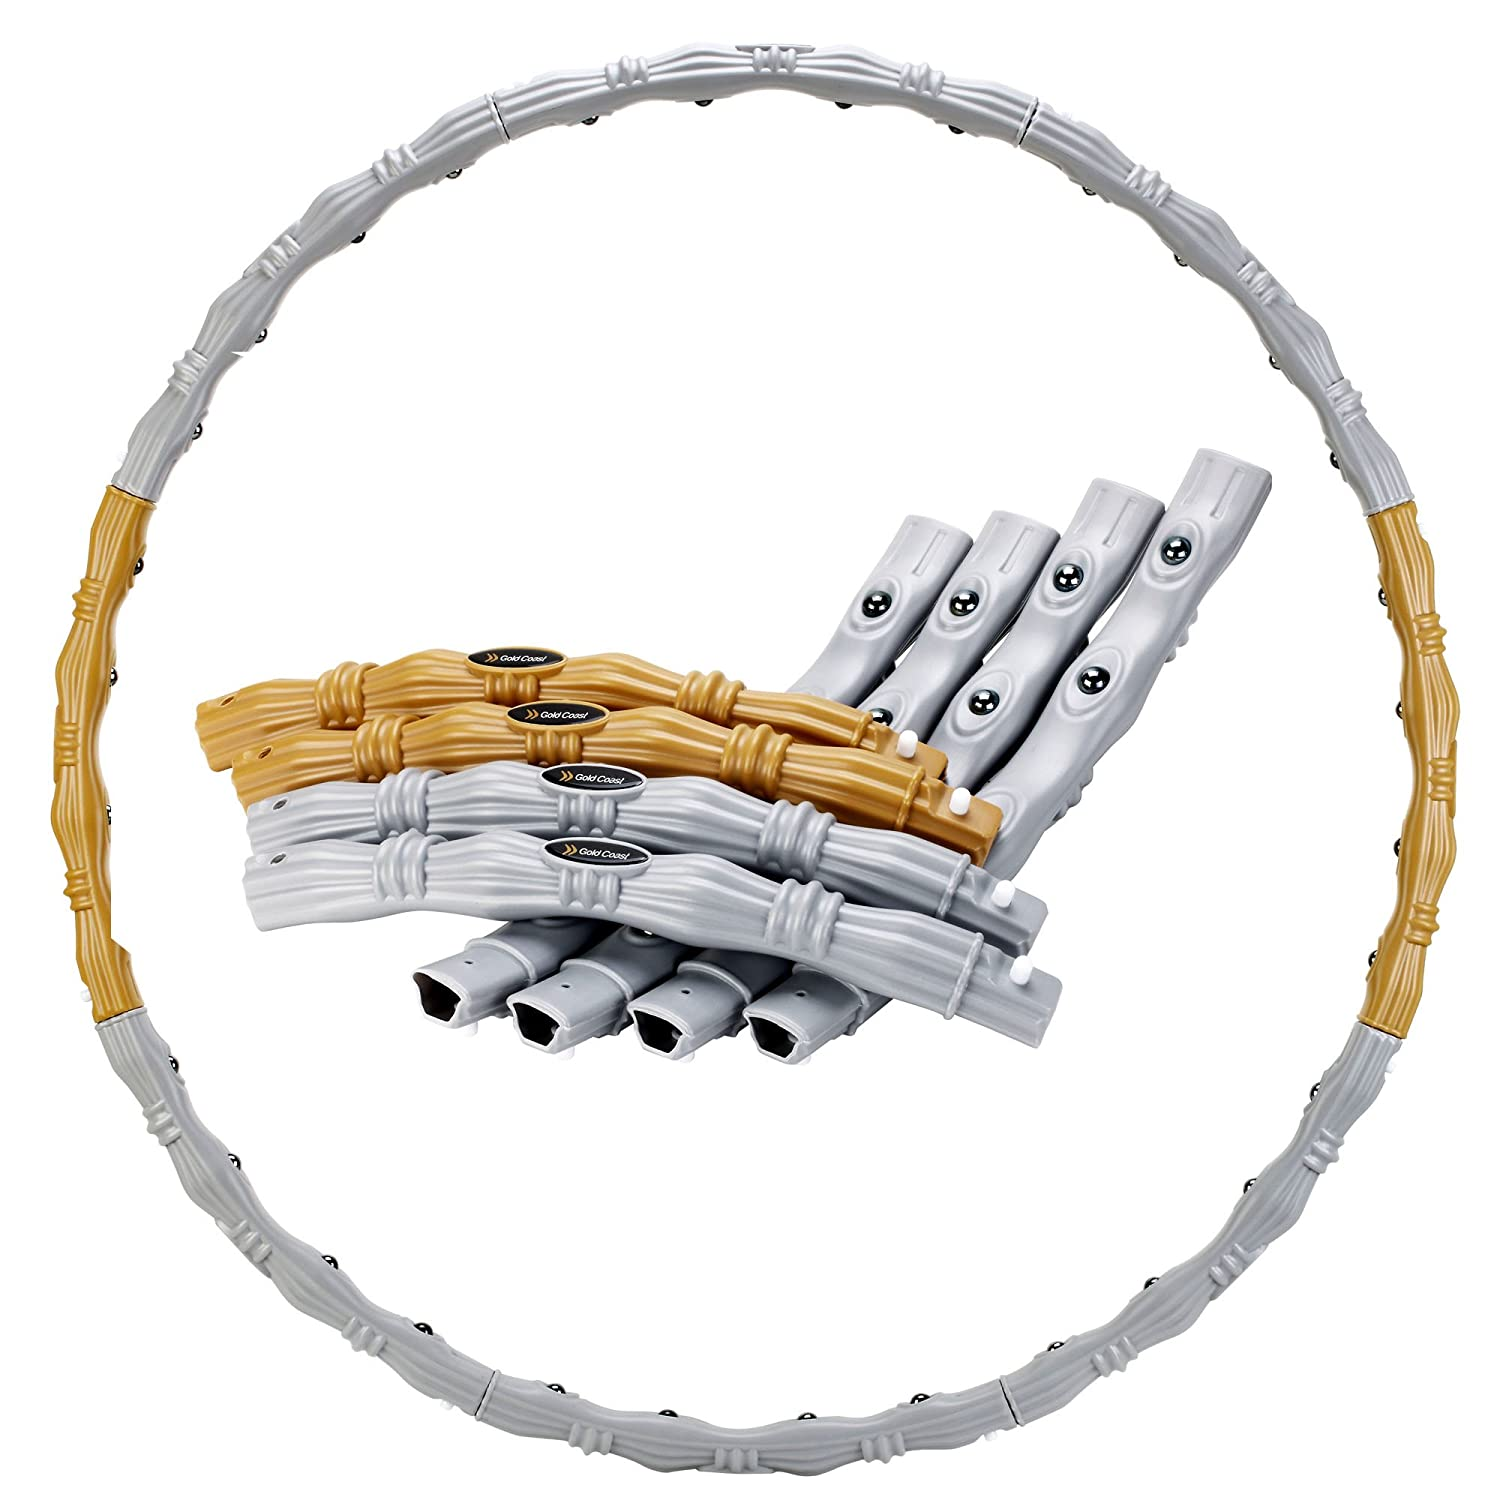 Gold Coast Fitness Hula Hoop or Hoop with Foam Padding Each Sold Separately 20/003